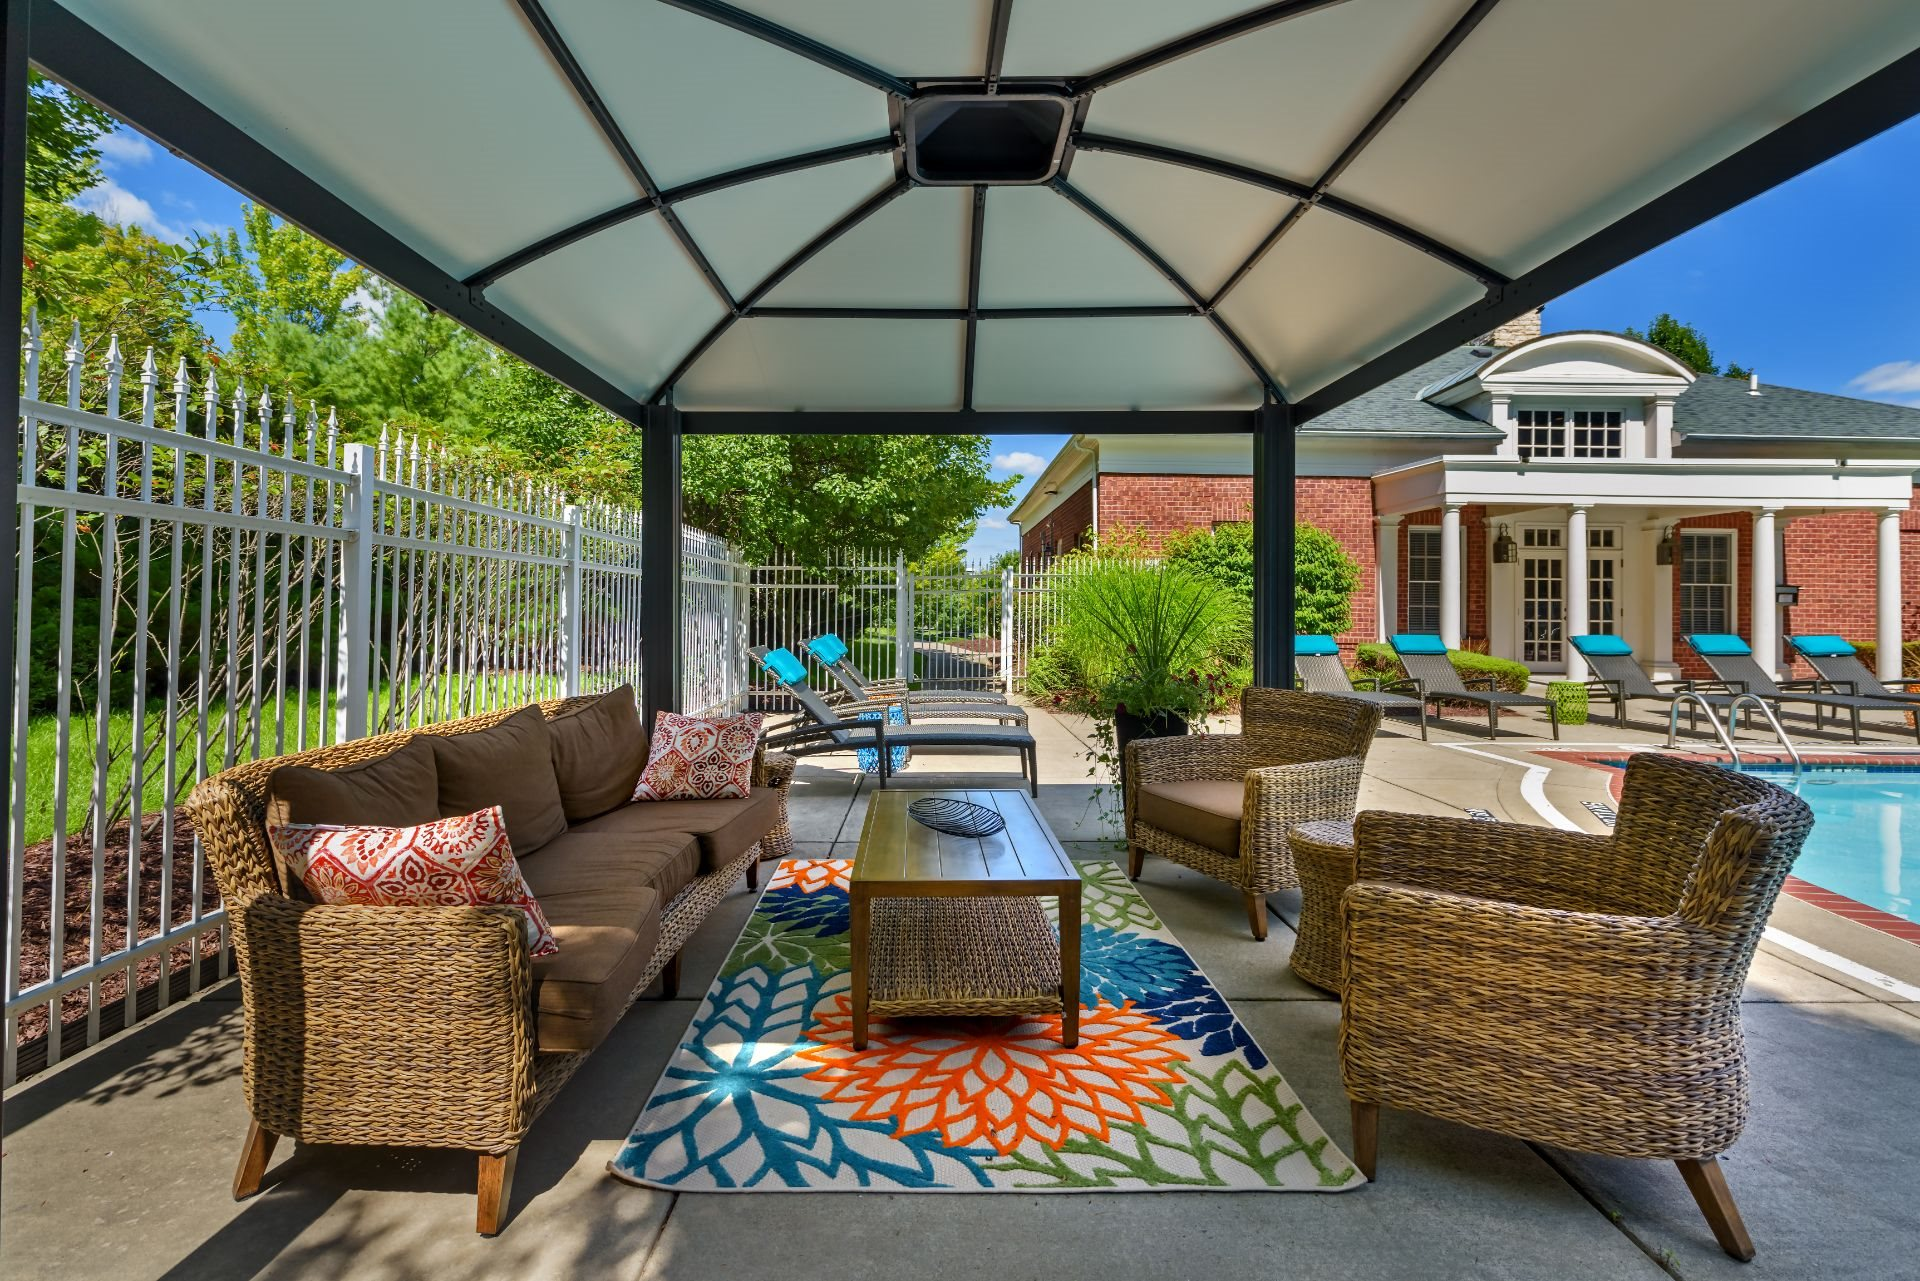 Luxury Apartments with Pool and Cabanas Christopher Wren Apartments, 501 Christopher Wren Drive, Wexford, PA 15090